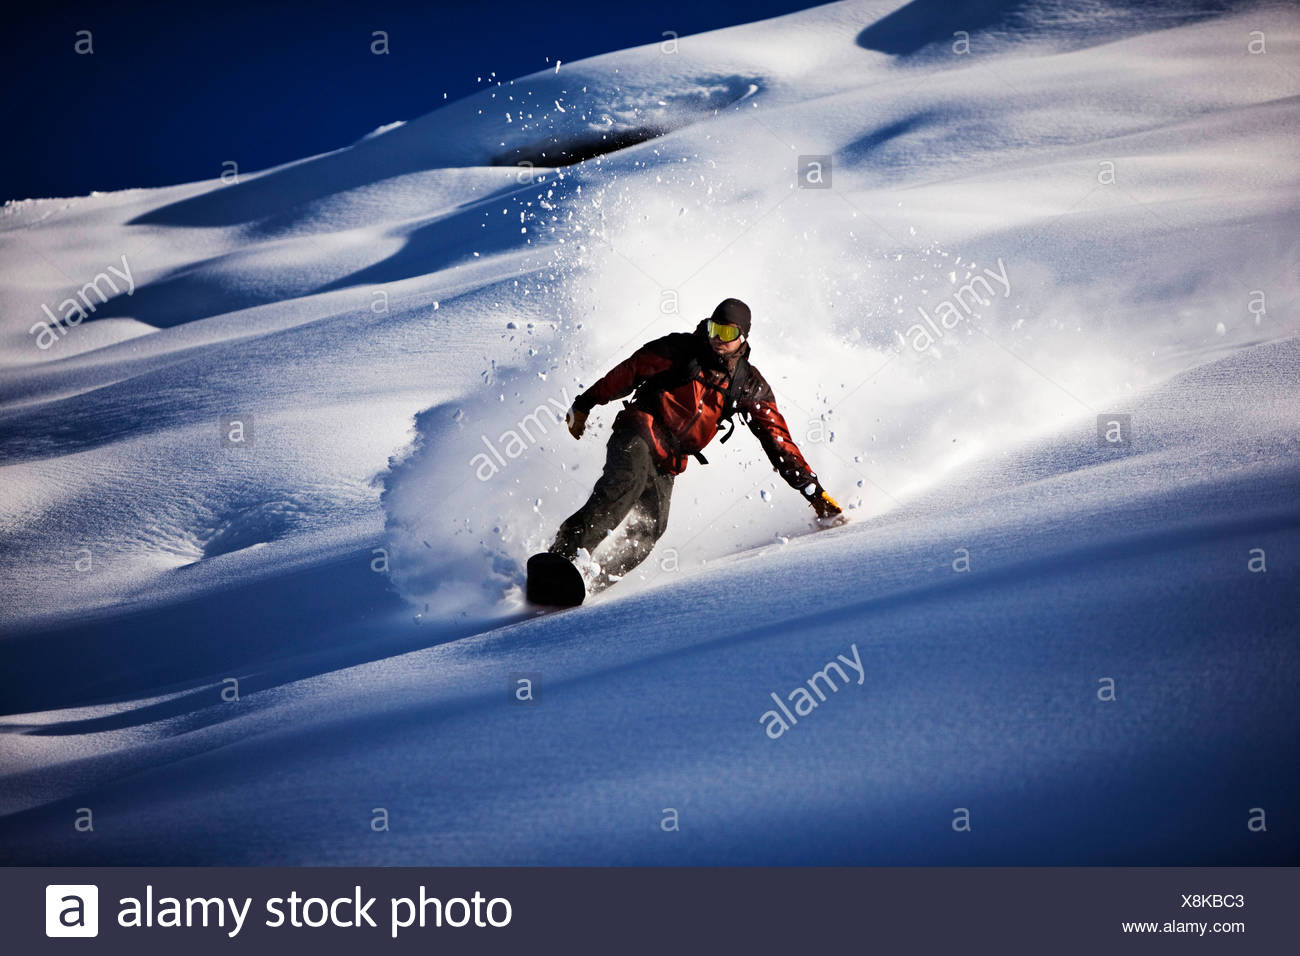 A athletic snowboarder rips fresh powder turns in the backcountry on a sunny day in Colorado. - Stock Image